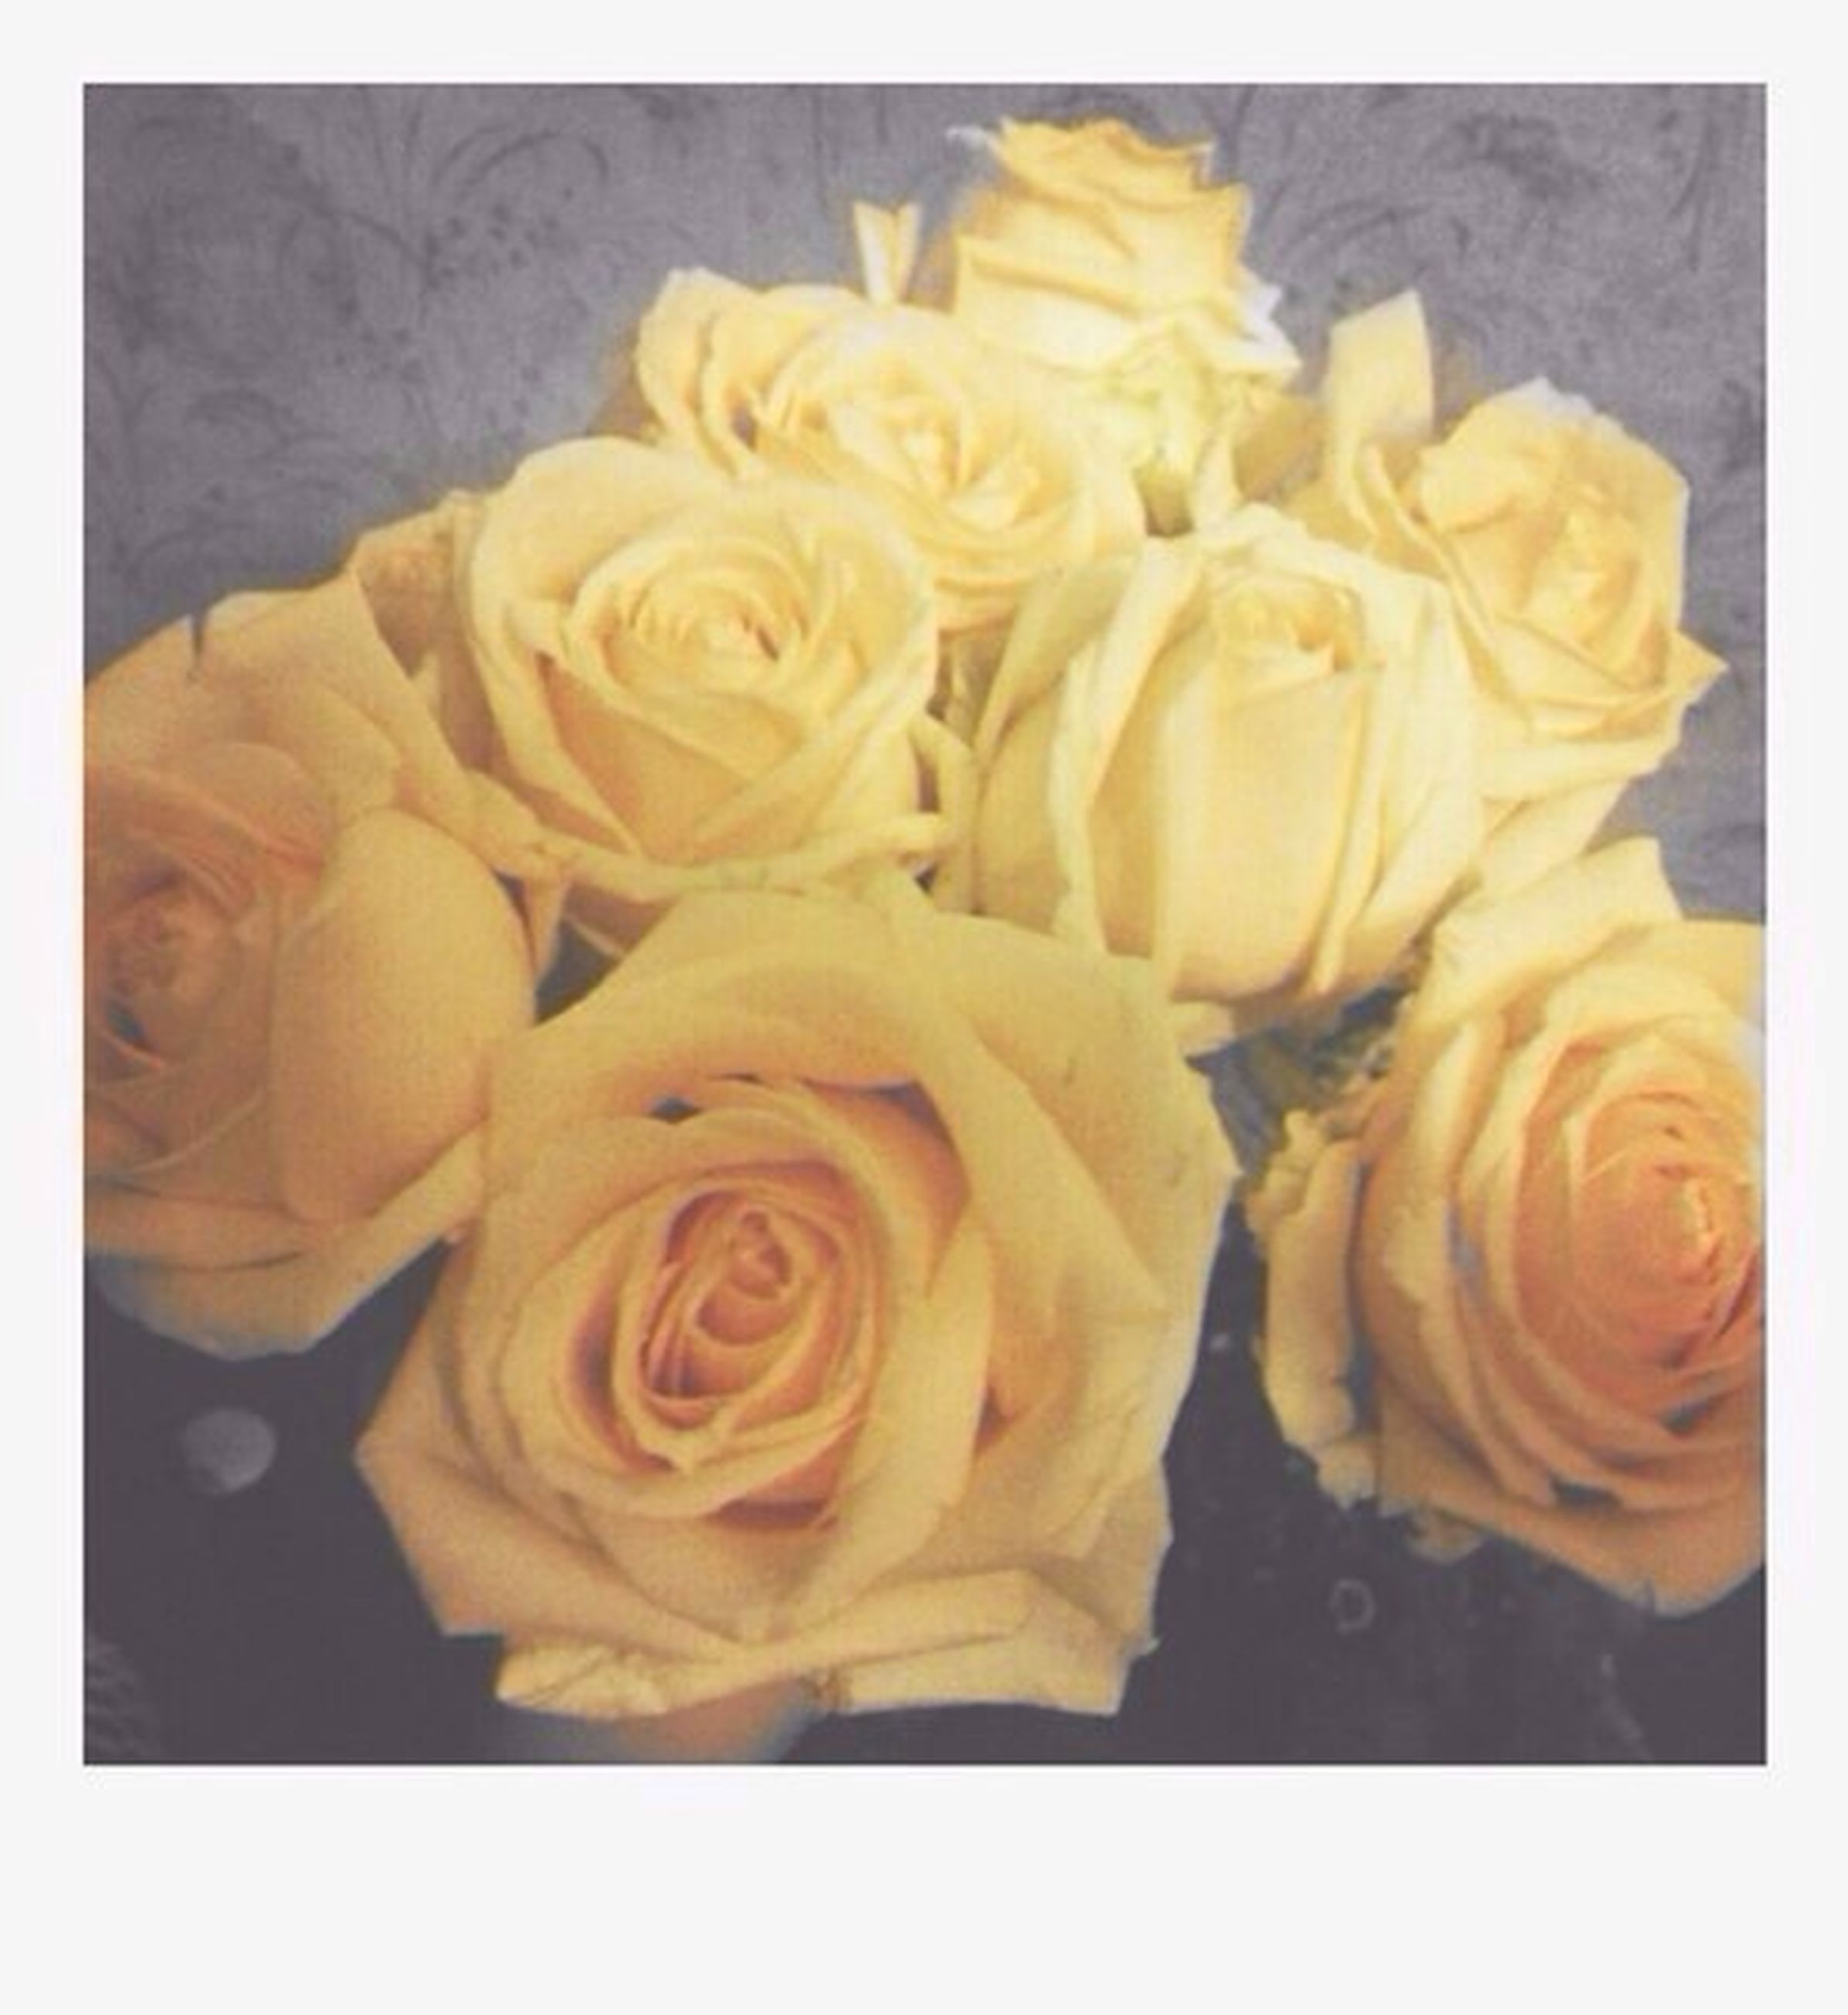 transfer print, flower, freshness, petal, rose - flower, auto post production filter, indoors, flower head, close-up, fragility, high angle view, rose, studio shot, still life, beauty in nature, yellow, no people, nature, food and drink, table